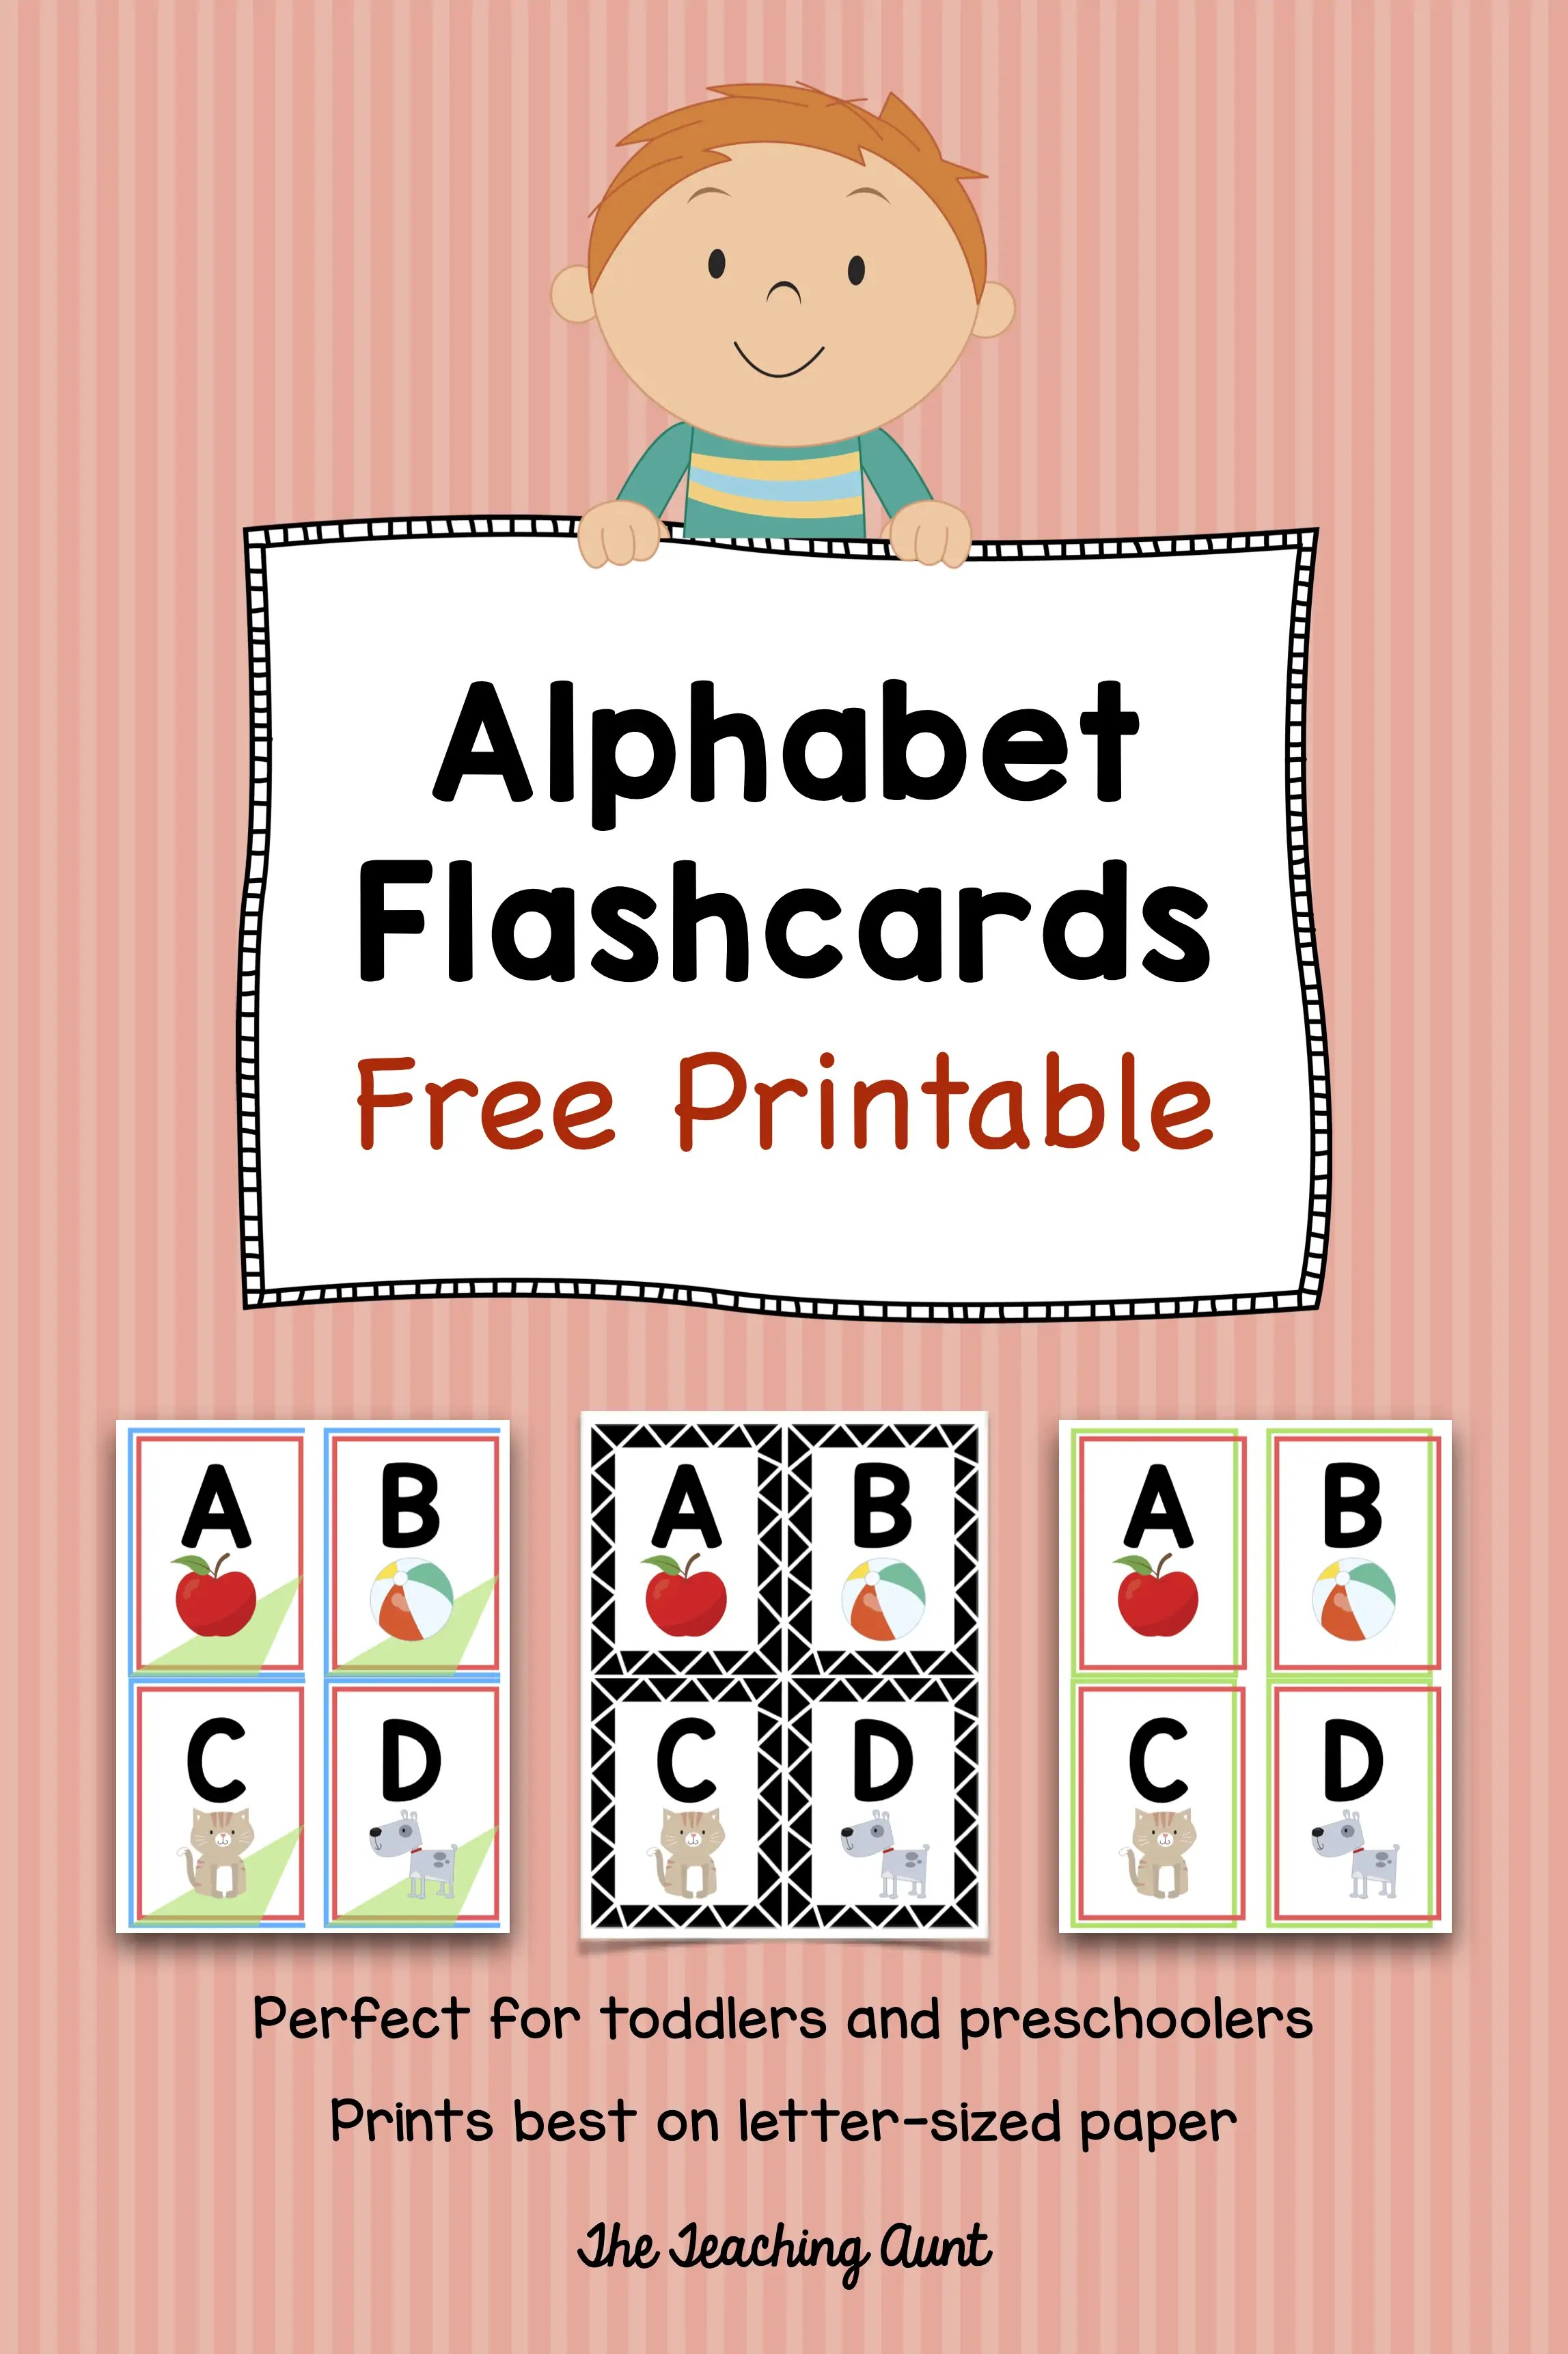 image regarding Abc Flash Cards Free Printable known as Alphabet Flashcards Totally free Printable - The Training Aunt